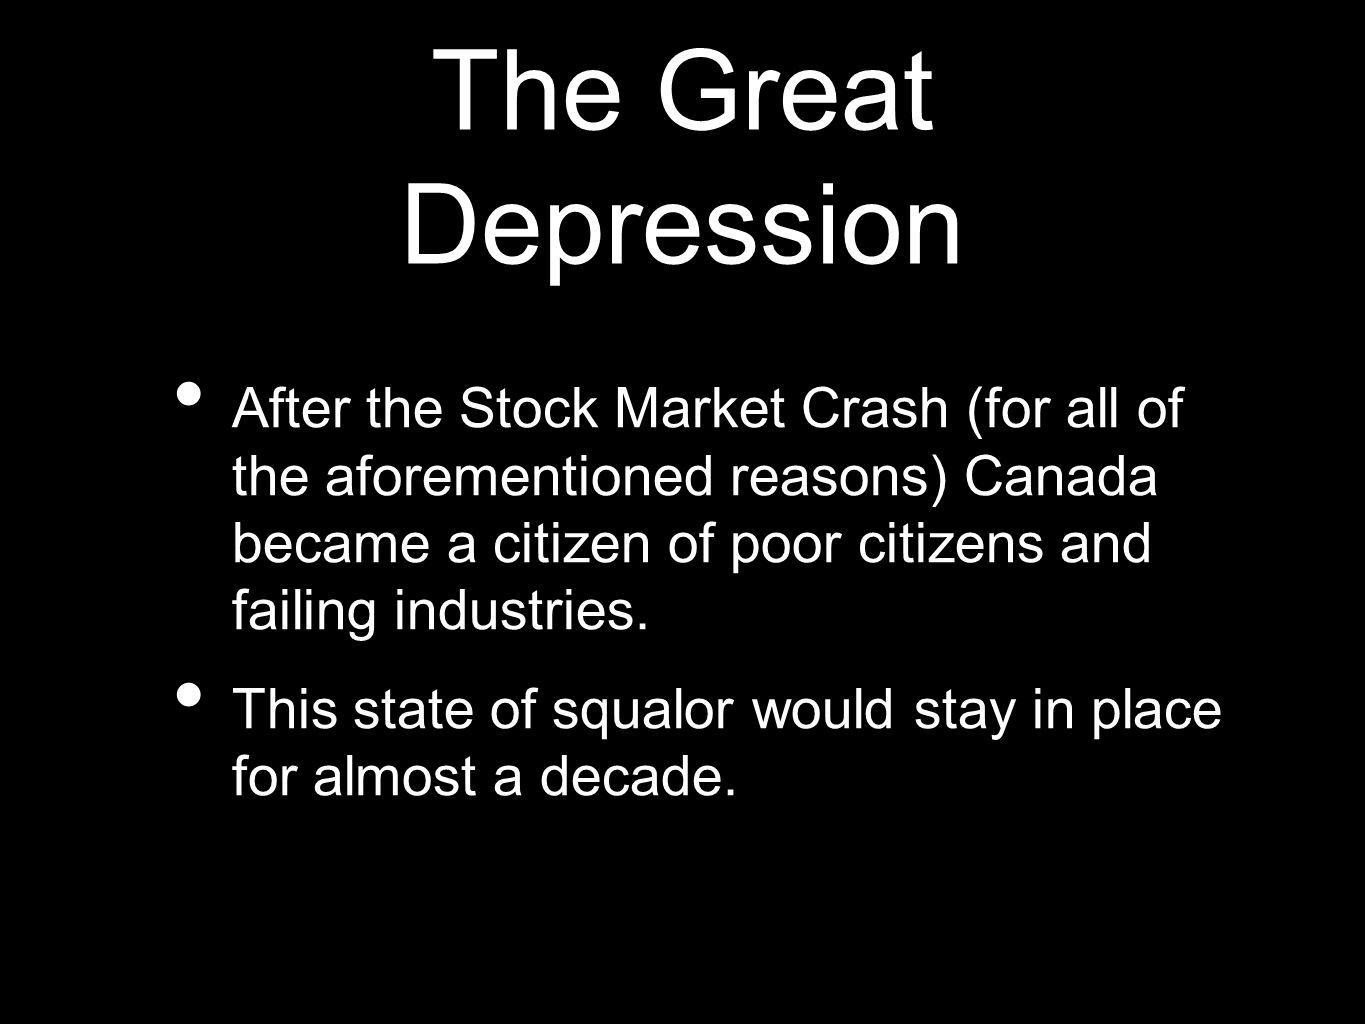 The Great Depression After the Stock Market Crash (for all of the aforementioned reasons) Canada became a citizen of poor citizens and failing industries.